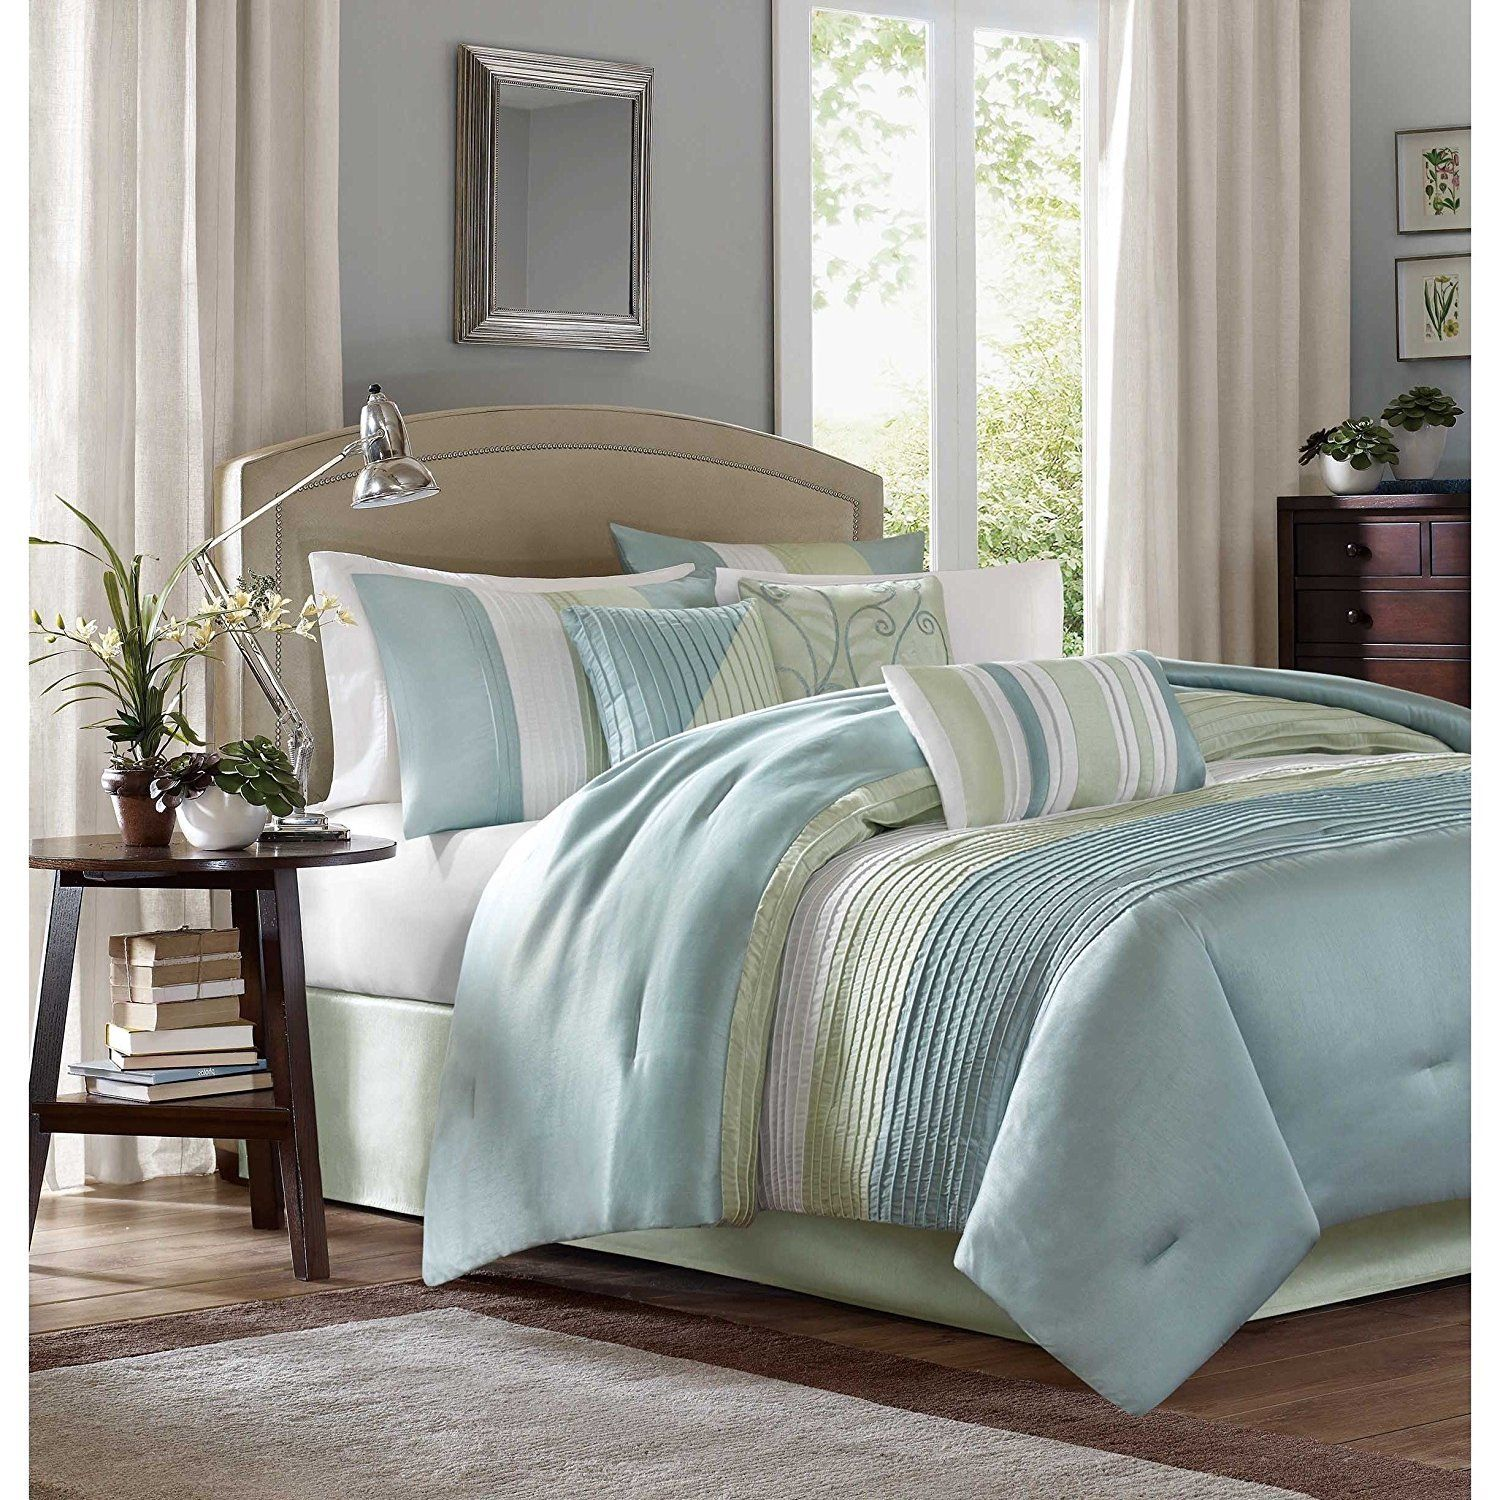 and pinterest duvet fashions set images grey cover zzz duvetdivas comforters on light bedroom home tea green bedrooms lime comforter best lawrence